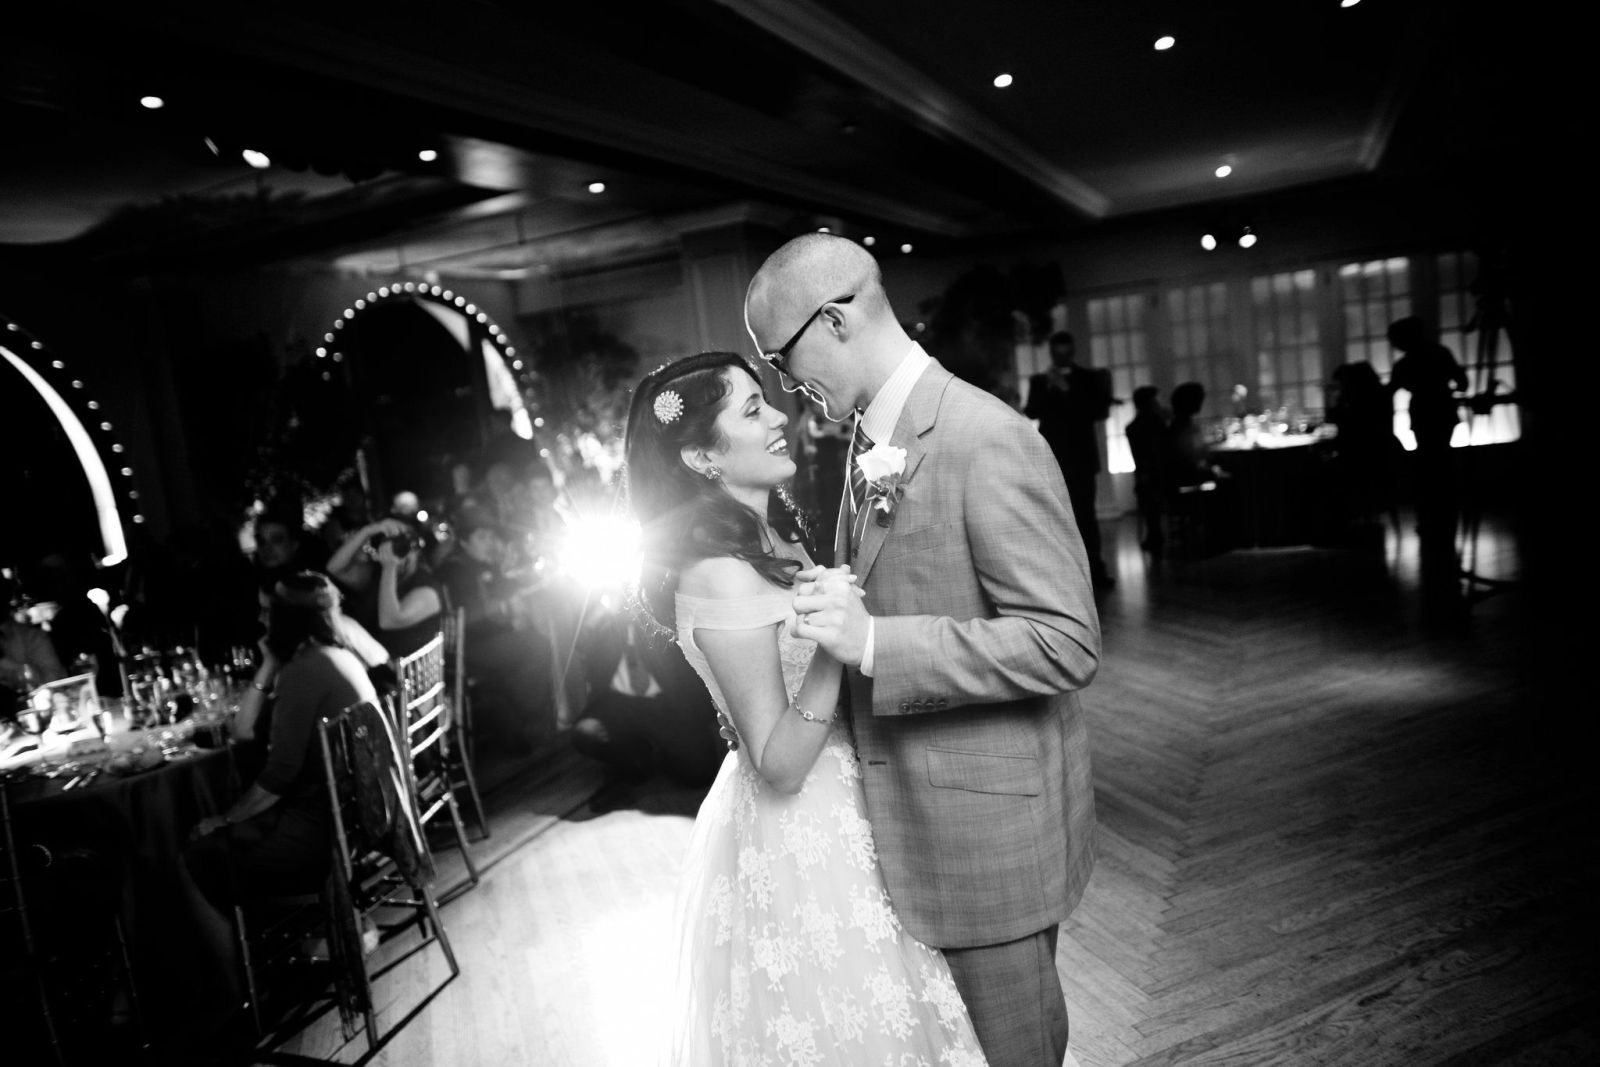 first dance, photo credit douglas benedict photography